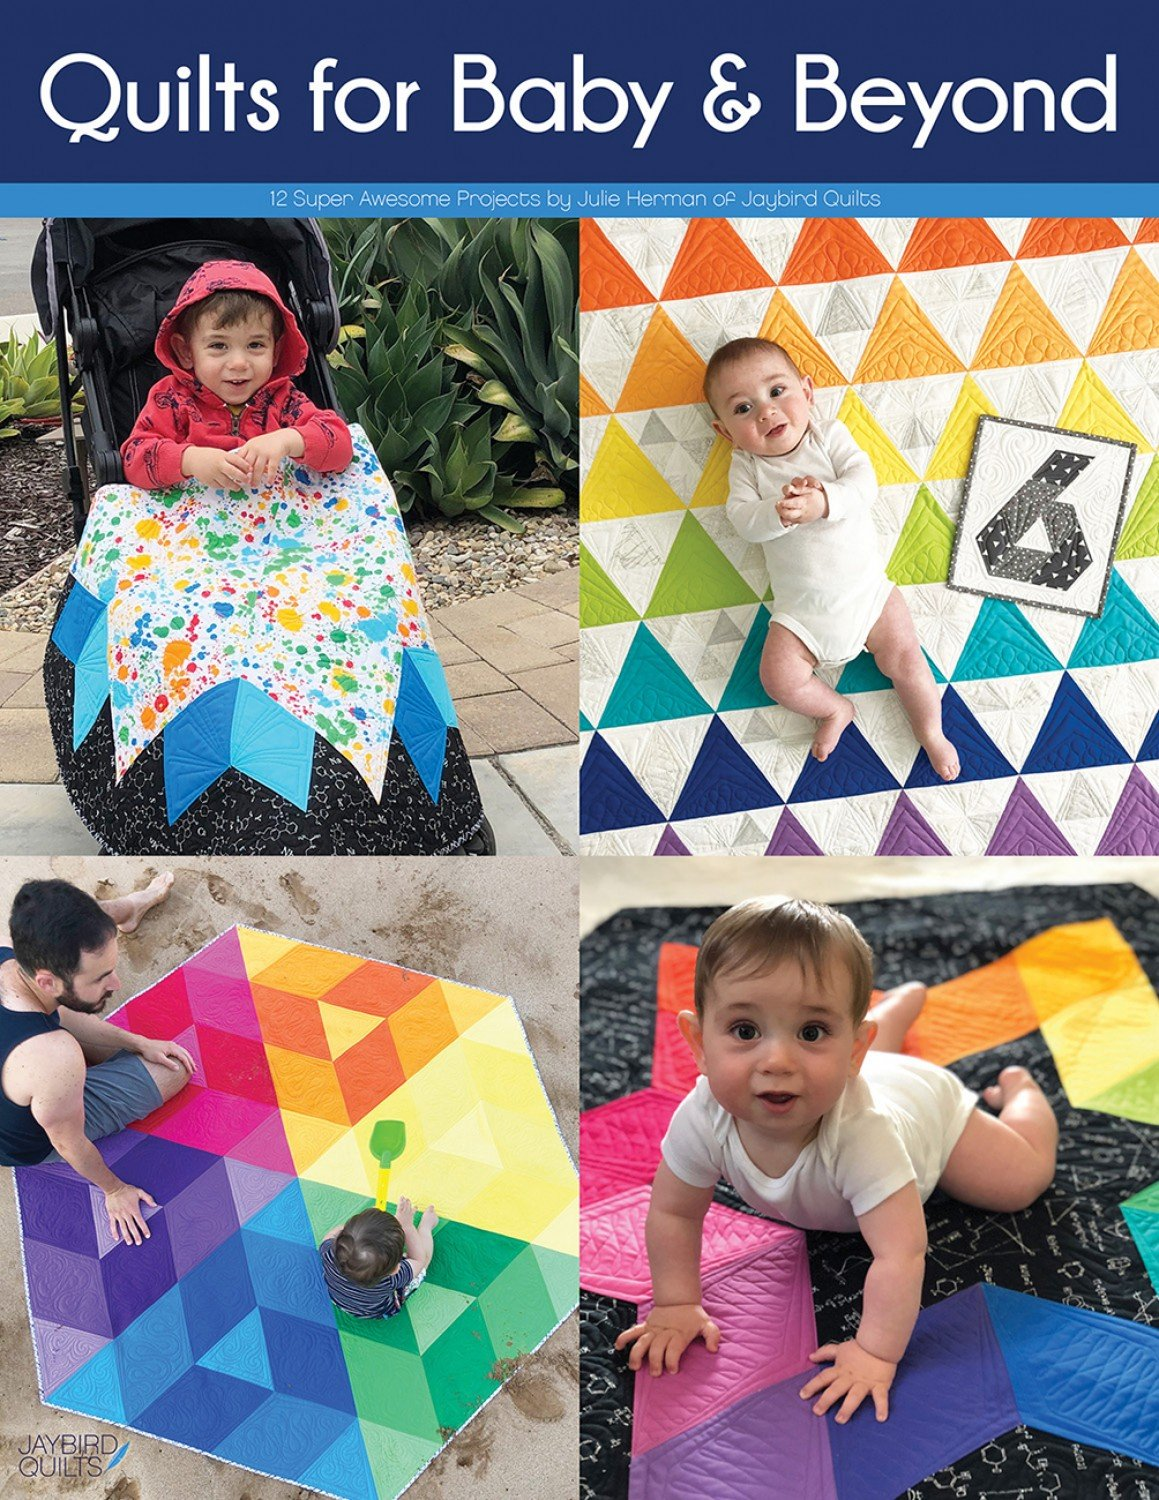 Quilts For Baby & Beyond Projects